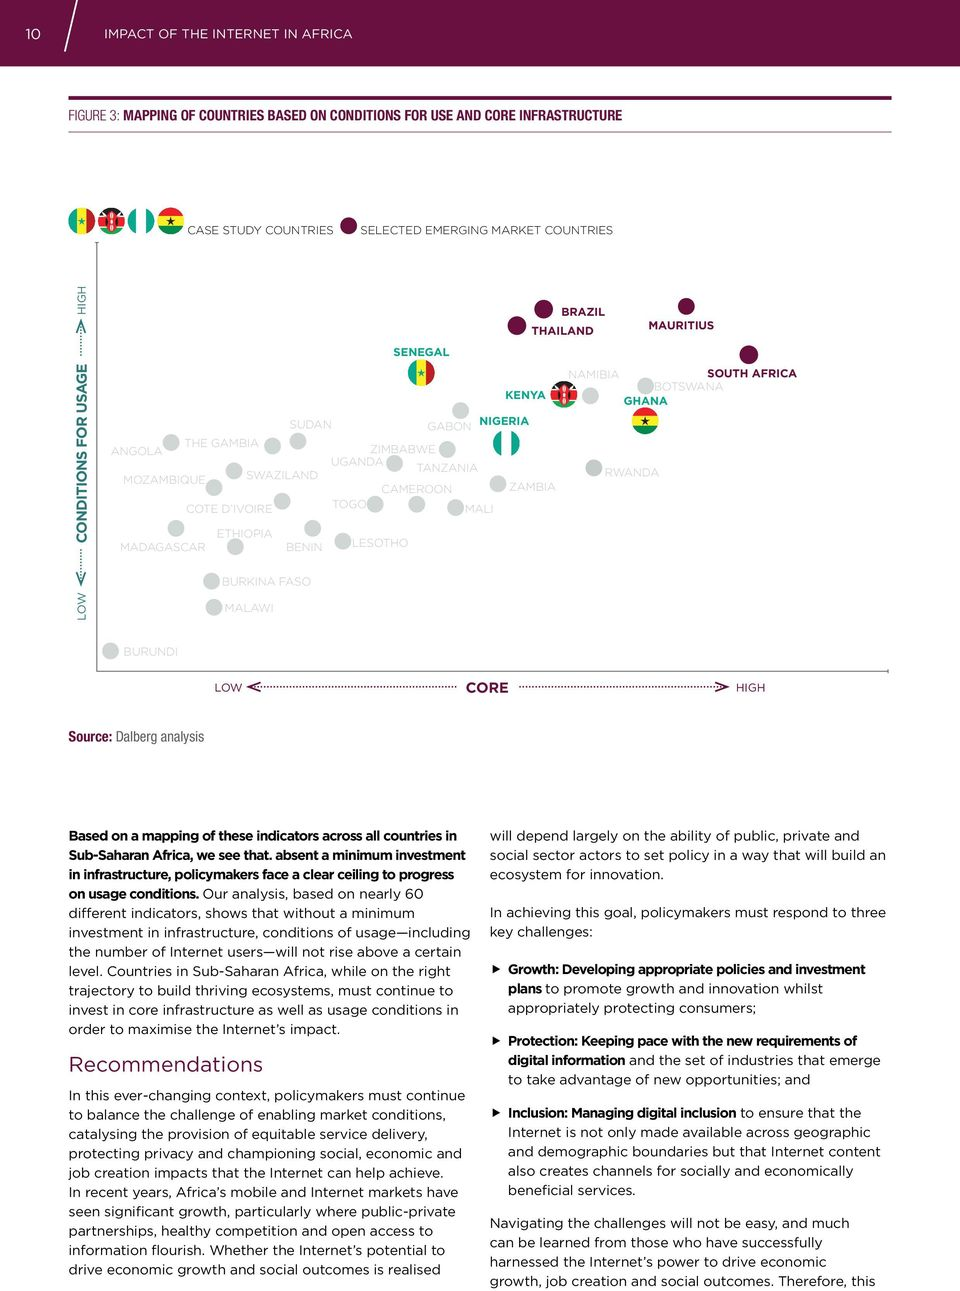 ivoire TOGO mali ethiopia madagascar BENIN LESOTHO burkina faso Malawi burundi LOW CORE HIGH Source: Dalberg analysis Based on a mapping of these indicators across all countries in Sub-Saharan